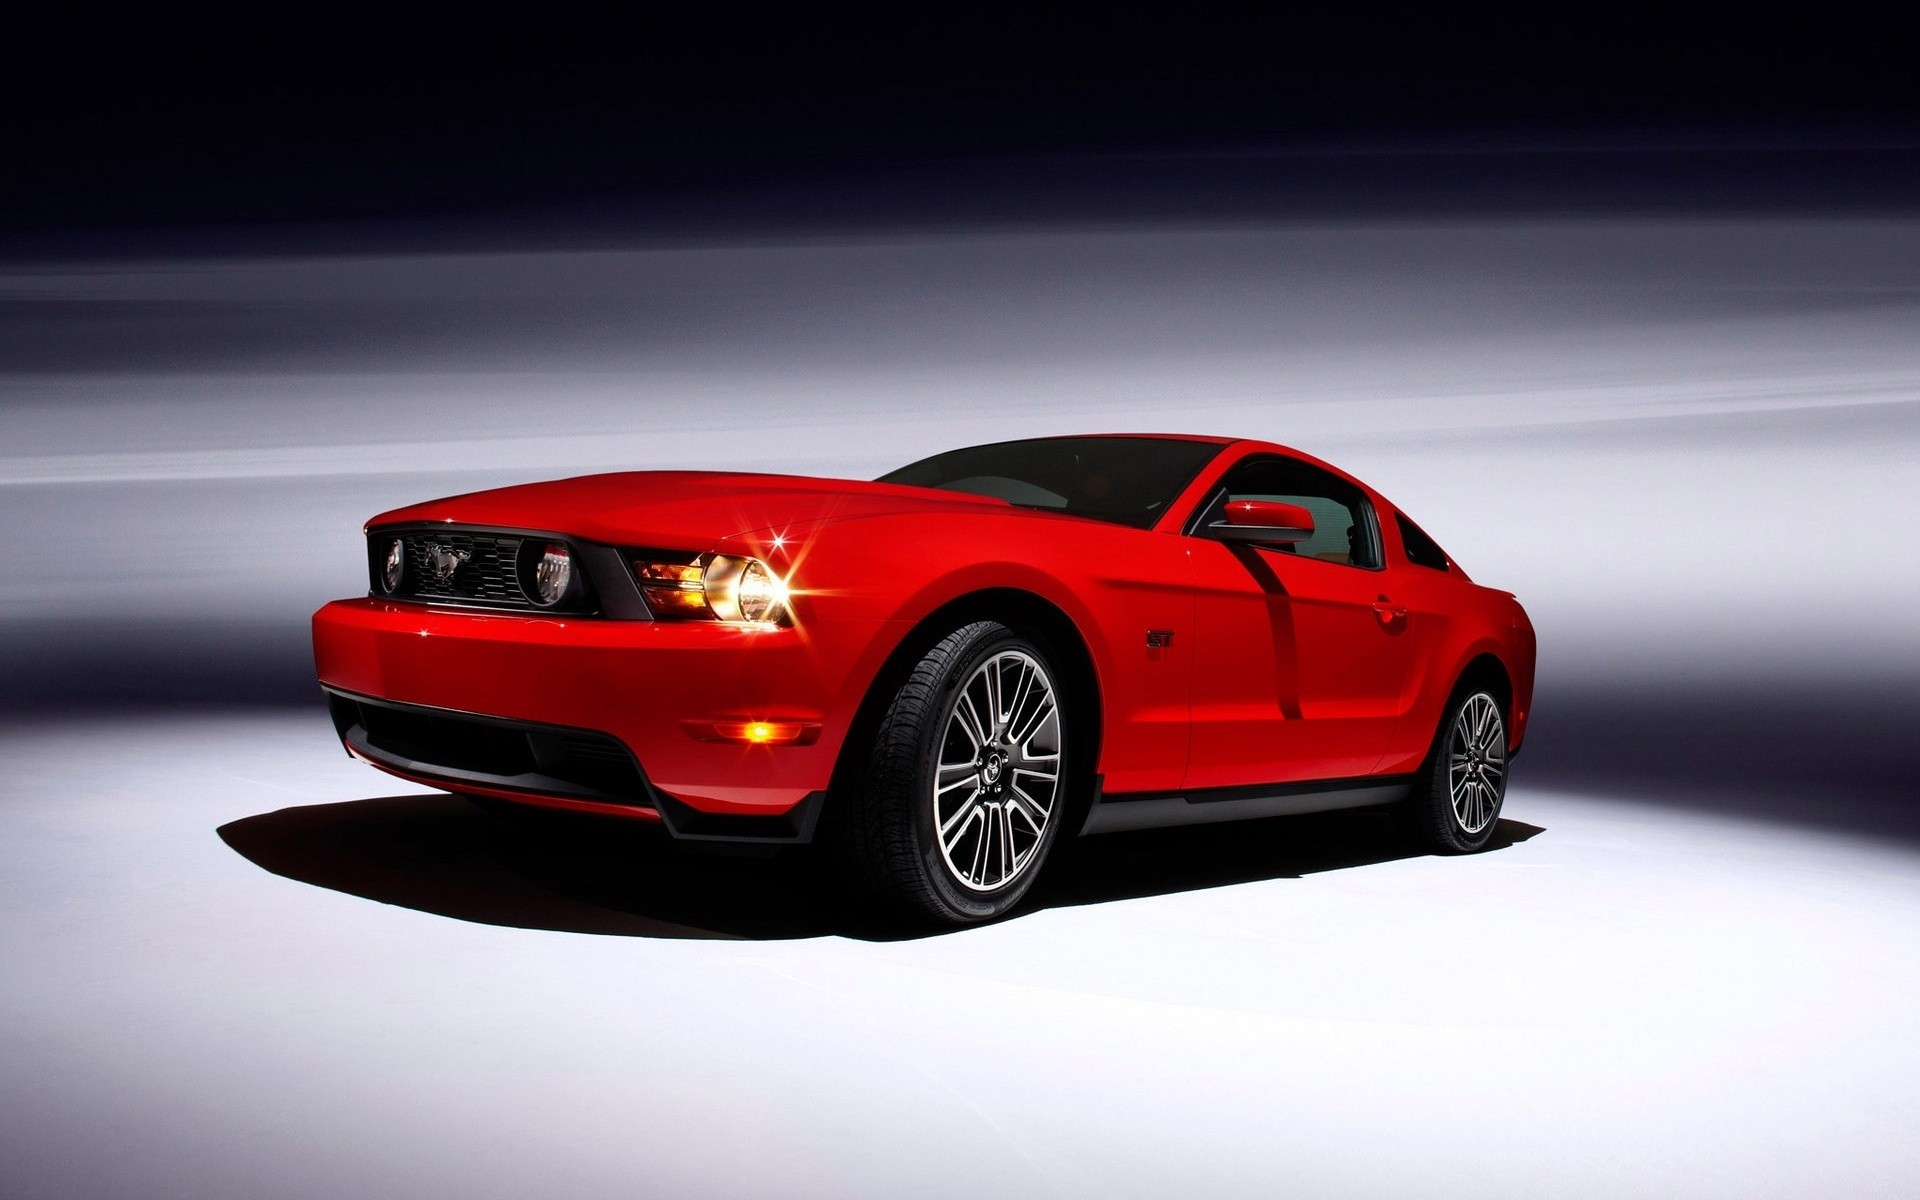 Ford Mustang купе 2010 года